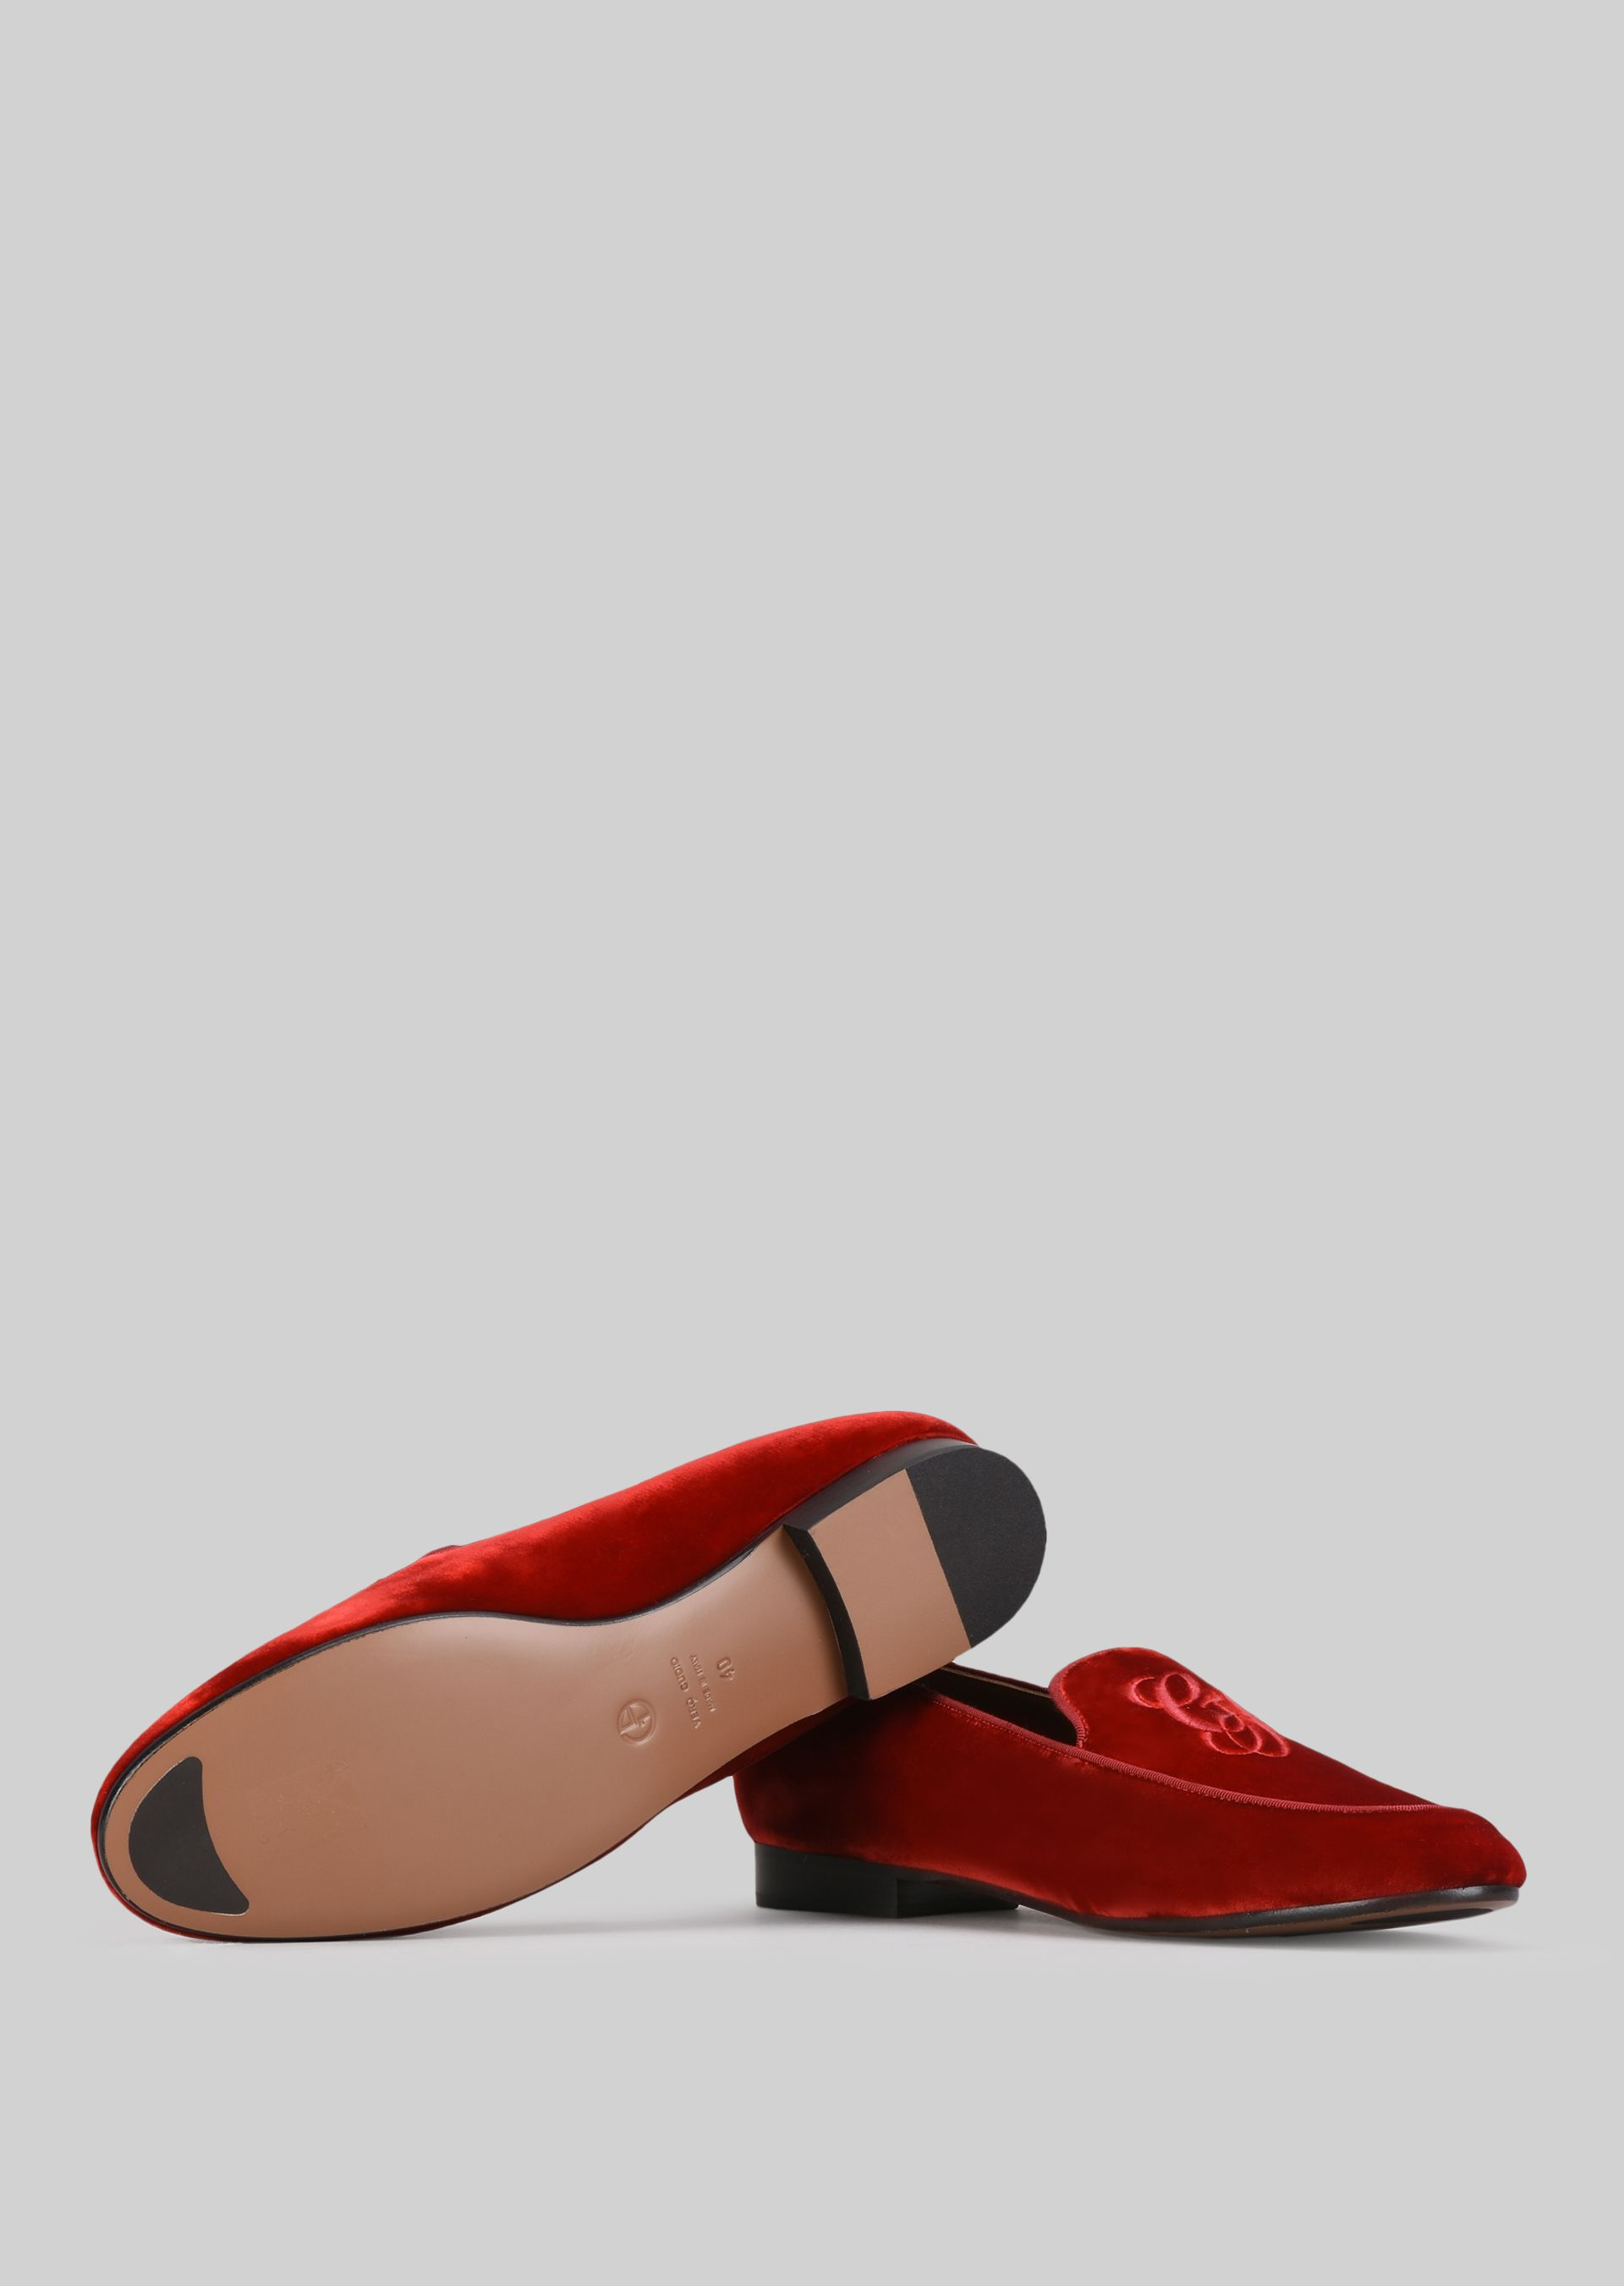 GIORGIO ARMANI VELVET LOAFERS Loafers D a